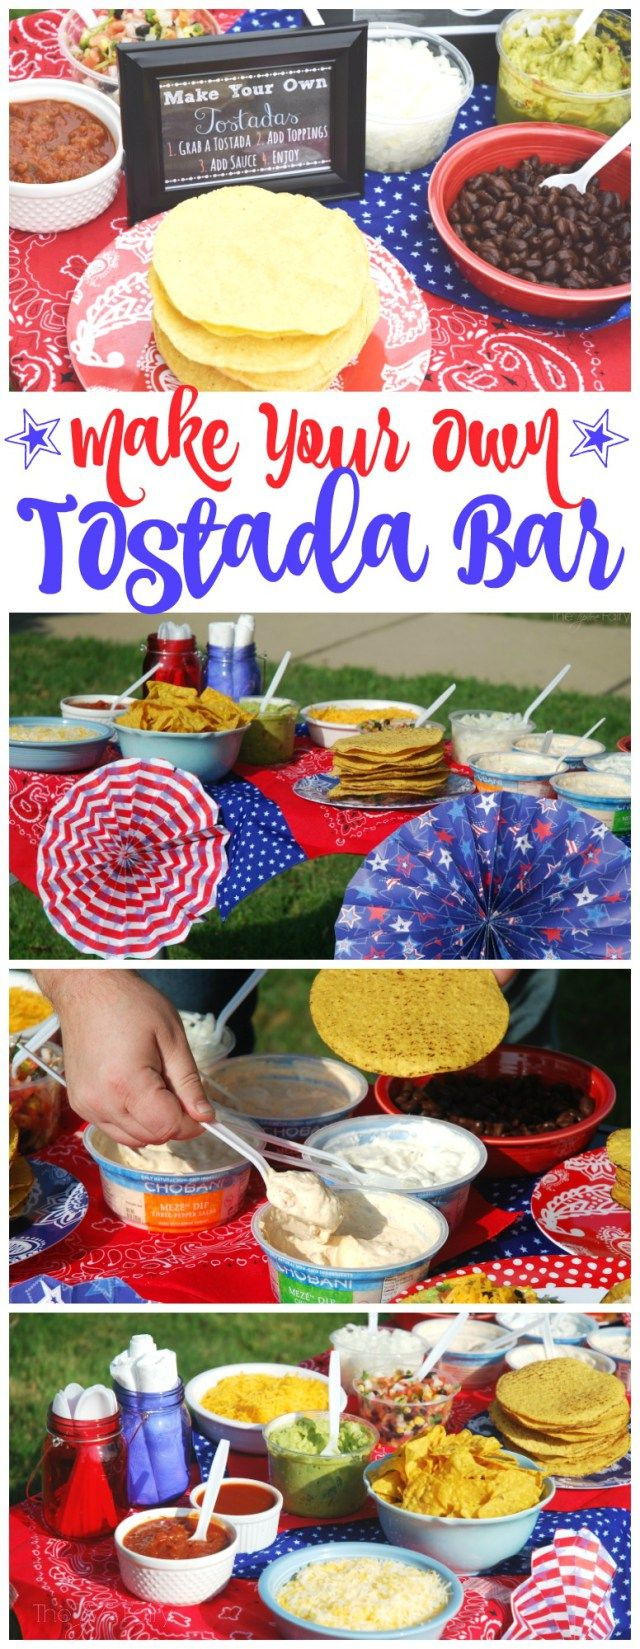 #DipIntoMeze w/ @Chobani with a Make Your Own Tostada Bar this weekend for an easy party or get together! #ad